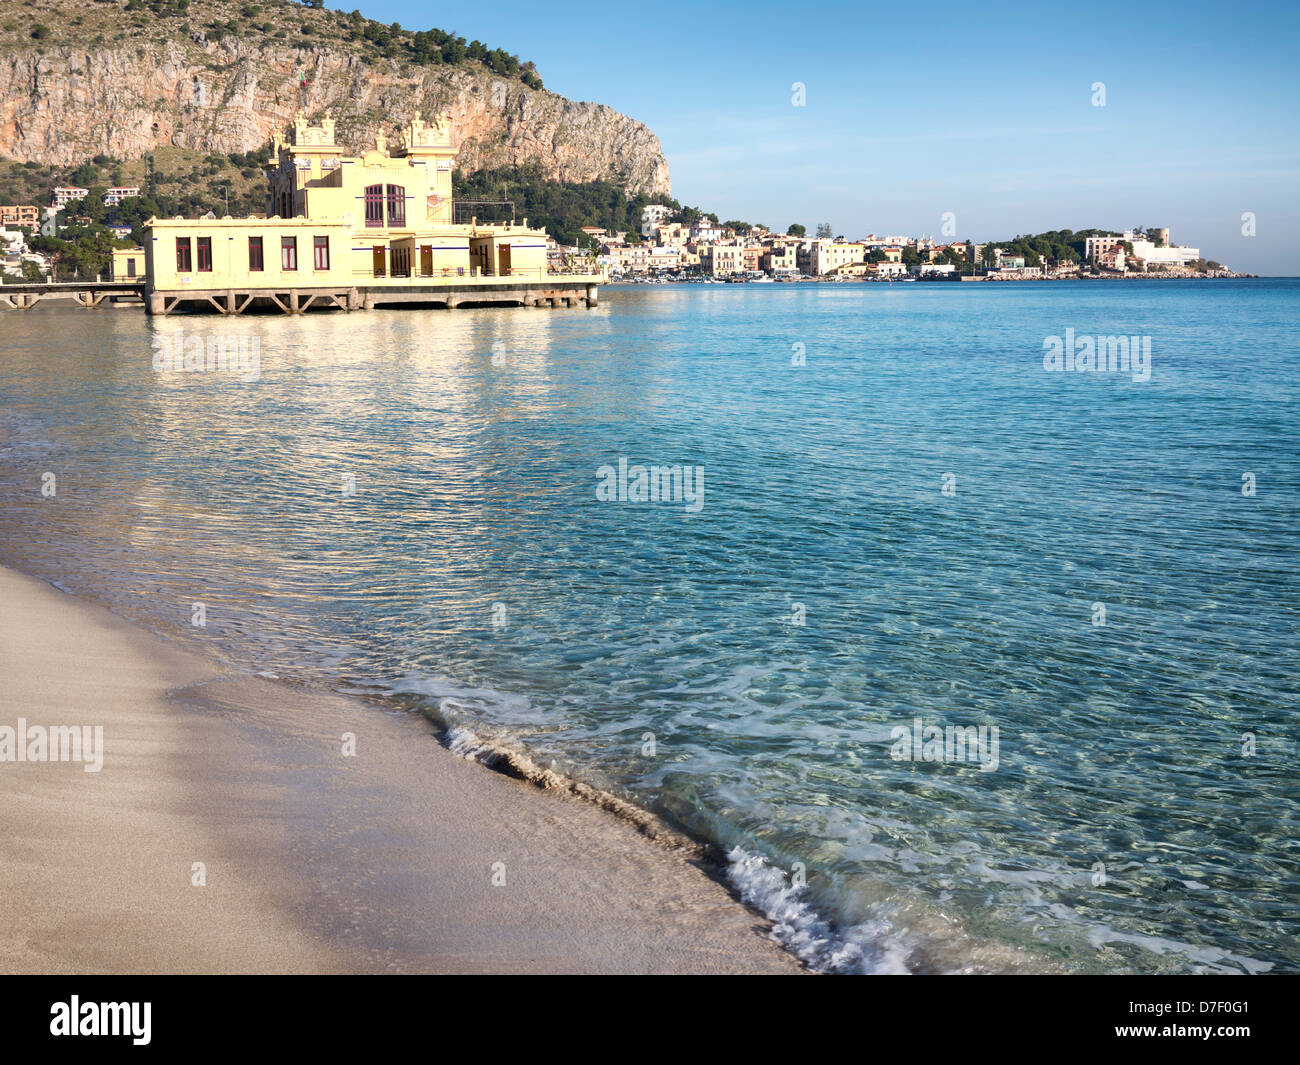 Beach House In Sicily Italy